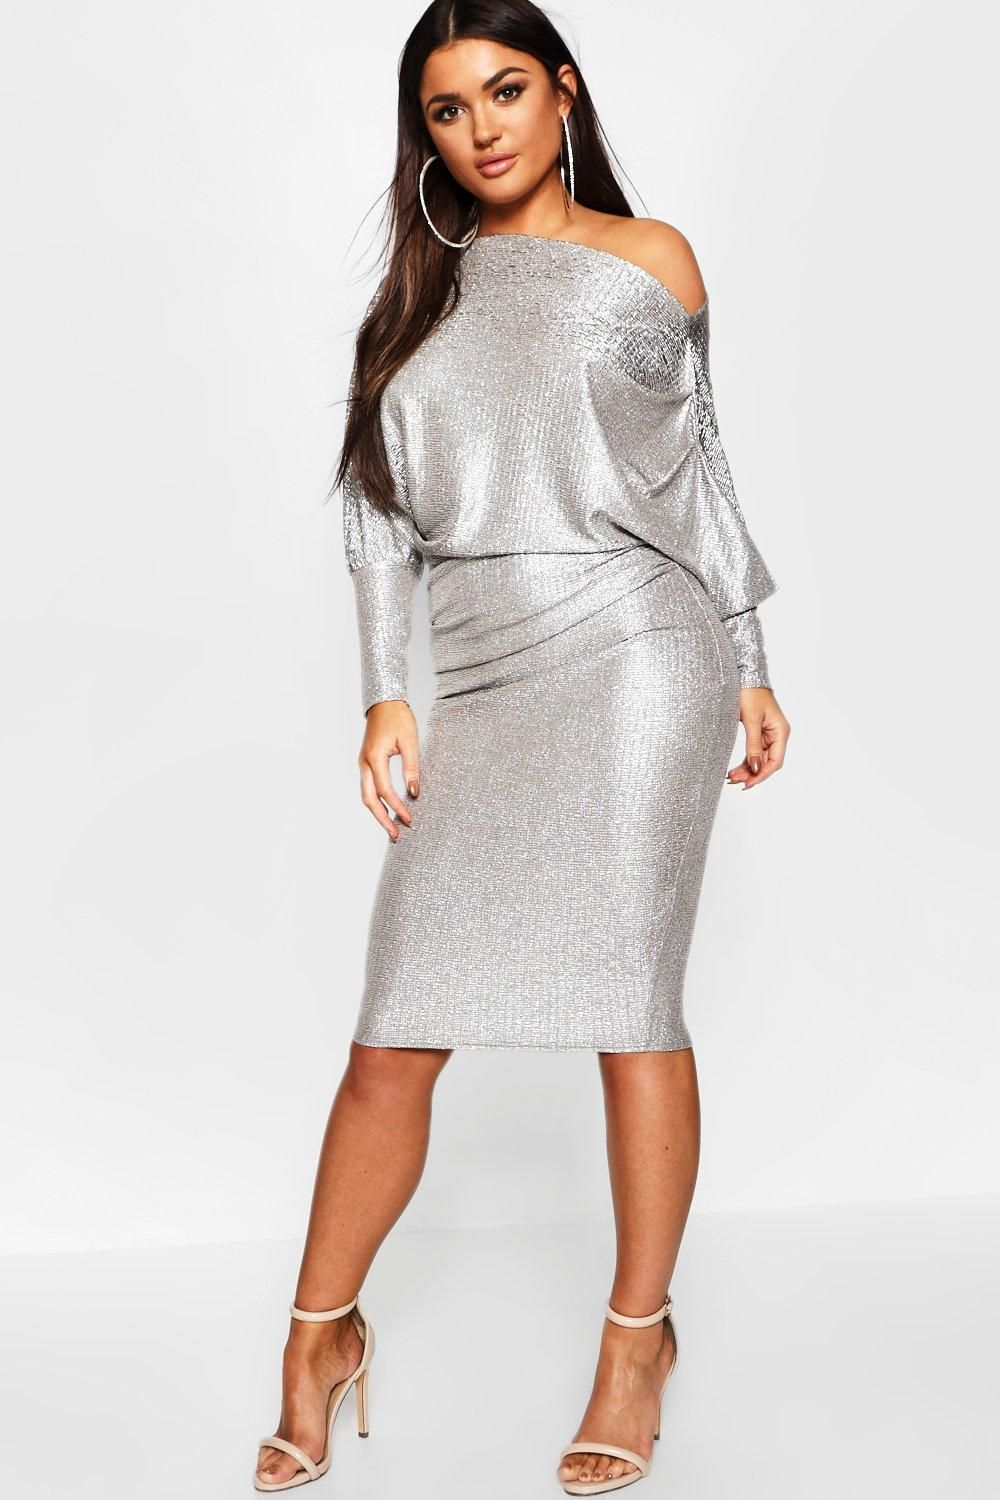 be3a7ed29b Click here to find out about the Off The Shoulder Metallic Midi Bodycon  Dress from Boohoo, part of our latest WOMENS collection ready to shop  online today!